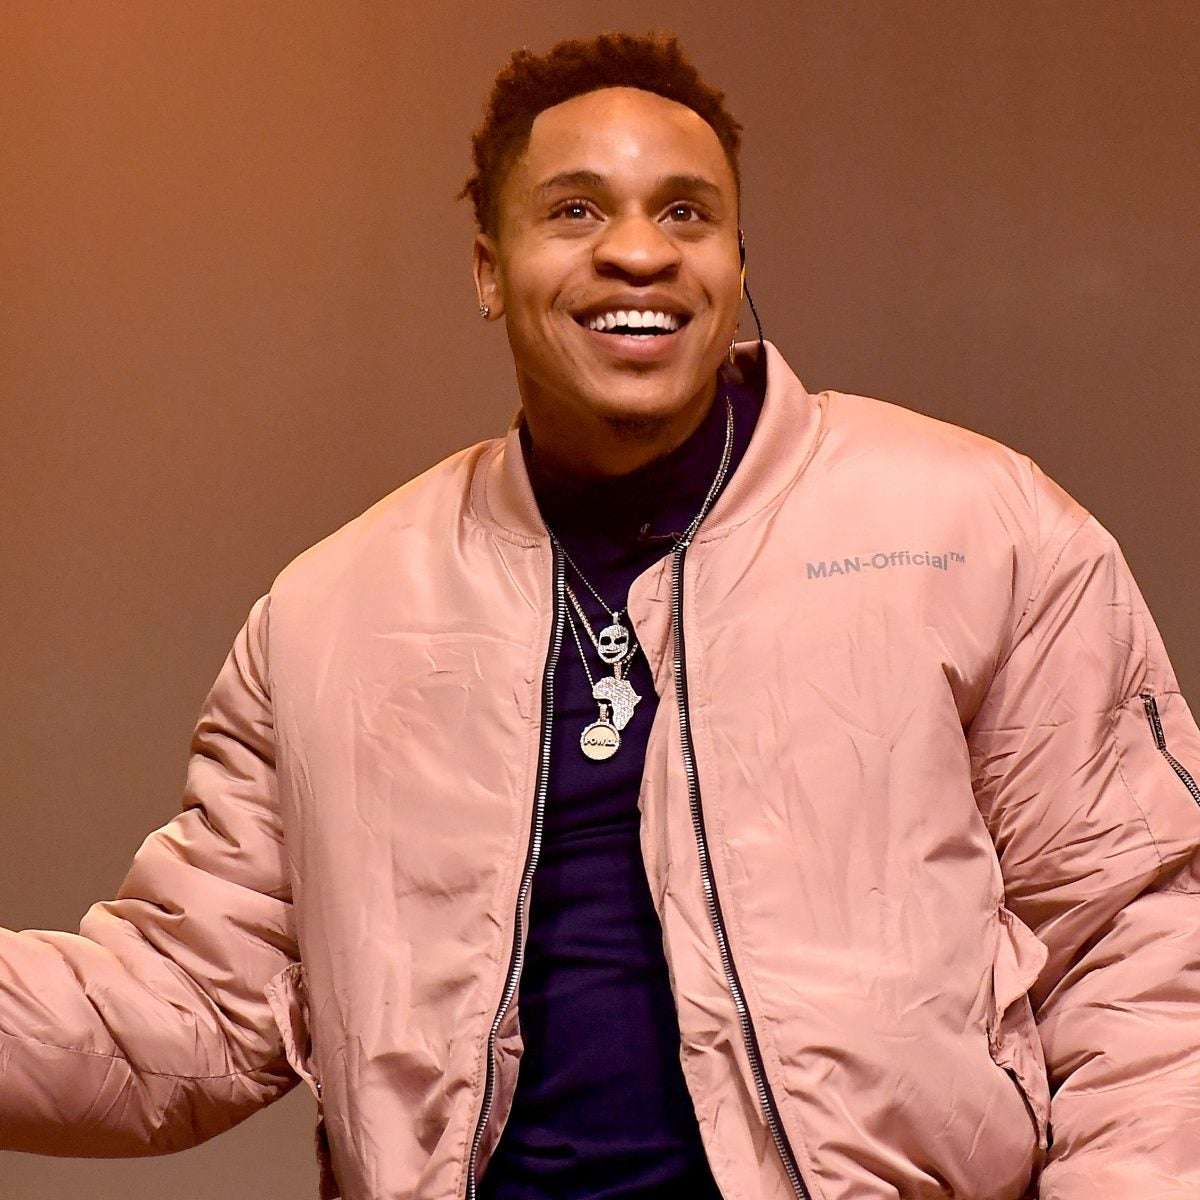 Rotimi Gives A Virtual Performance That Made Our Week for ESSENCE's Music Monday